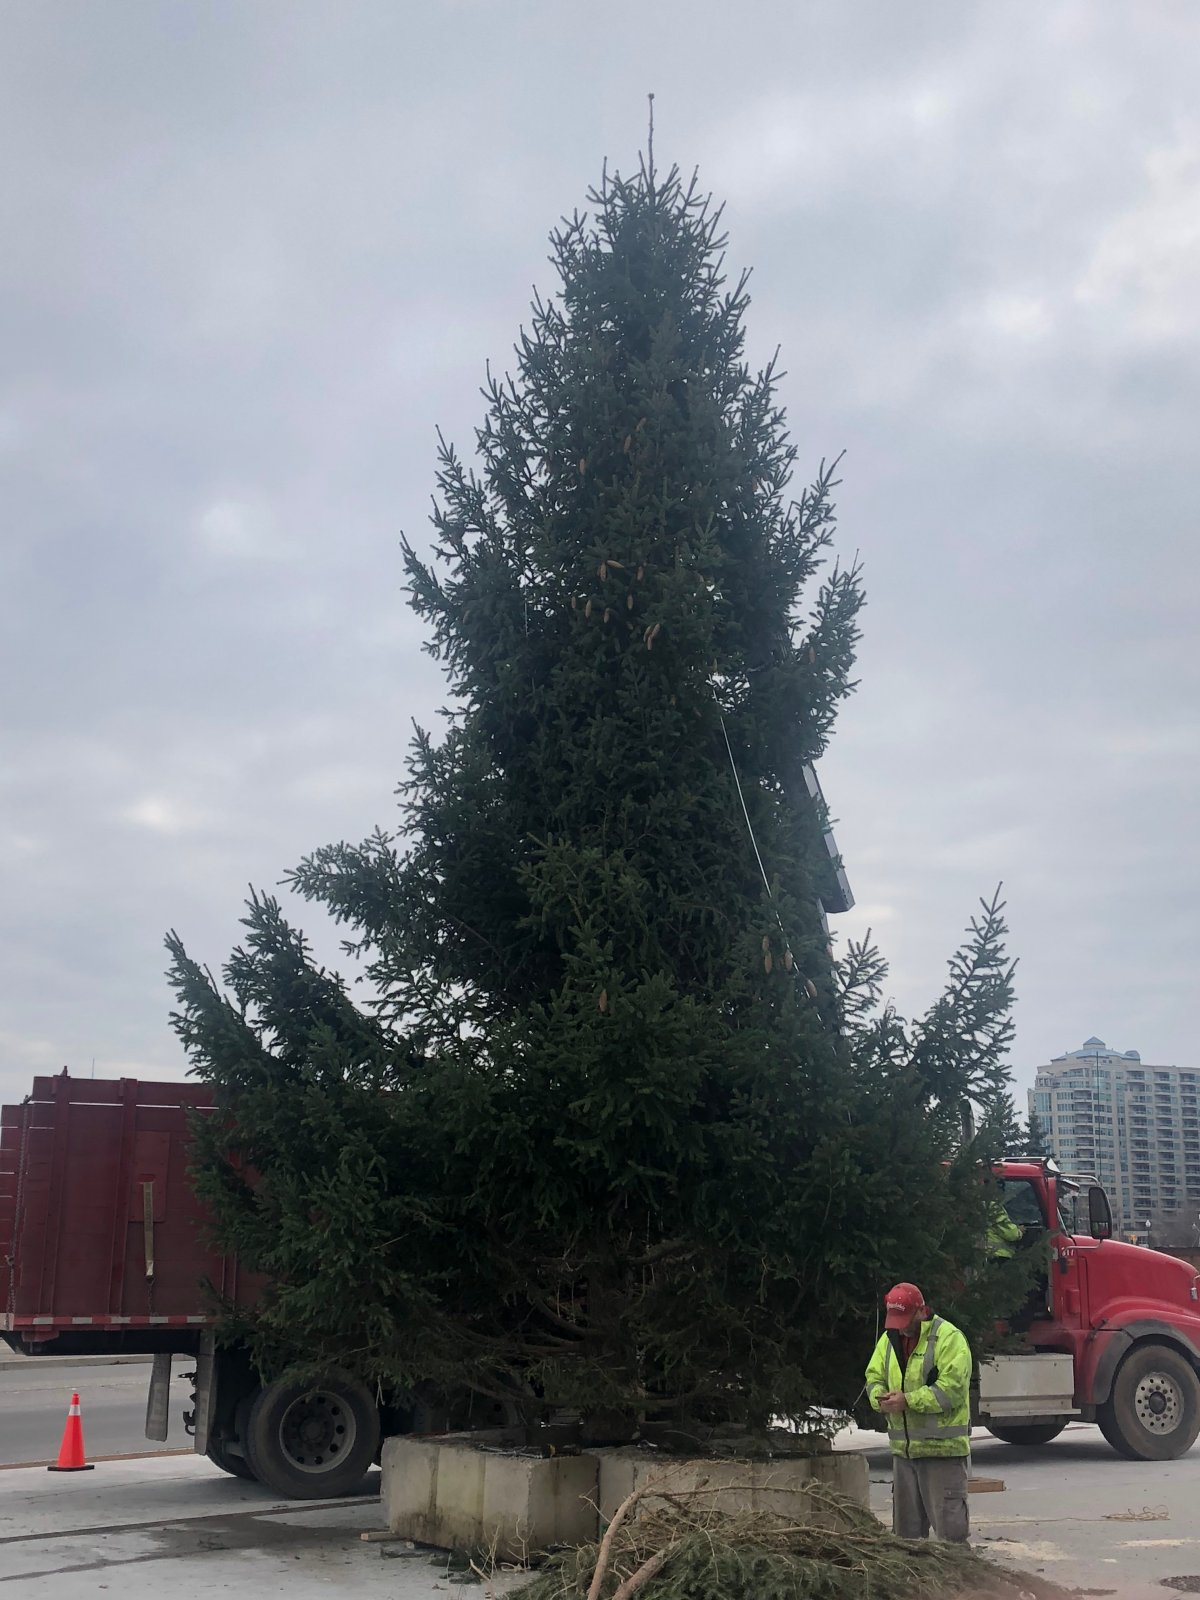 Meridian Place's 30-foot-tall Christmas tree will be lit up this Saturday, Nov. 17.